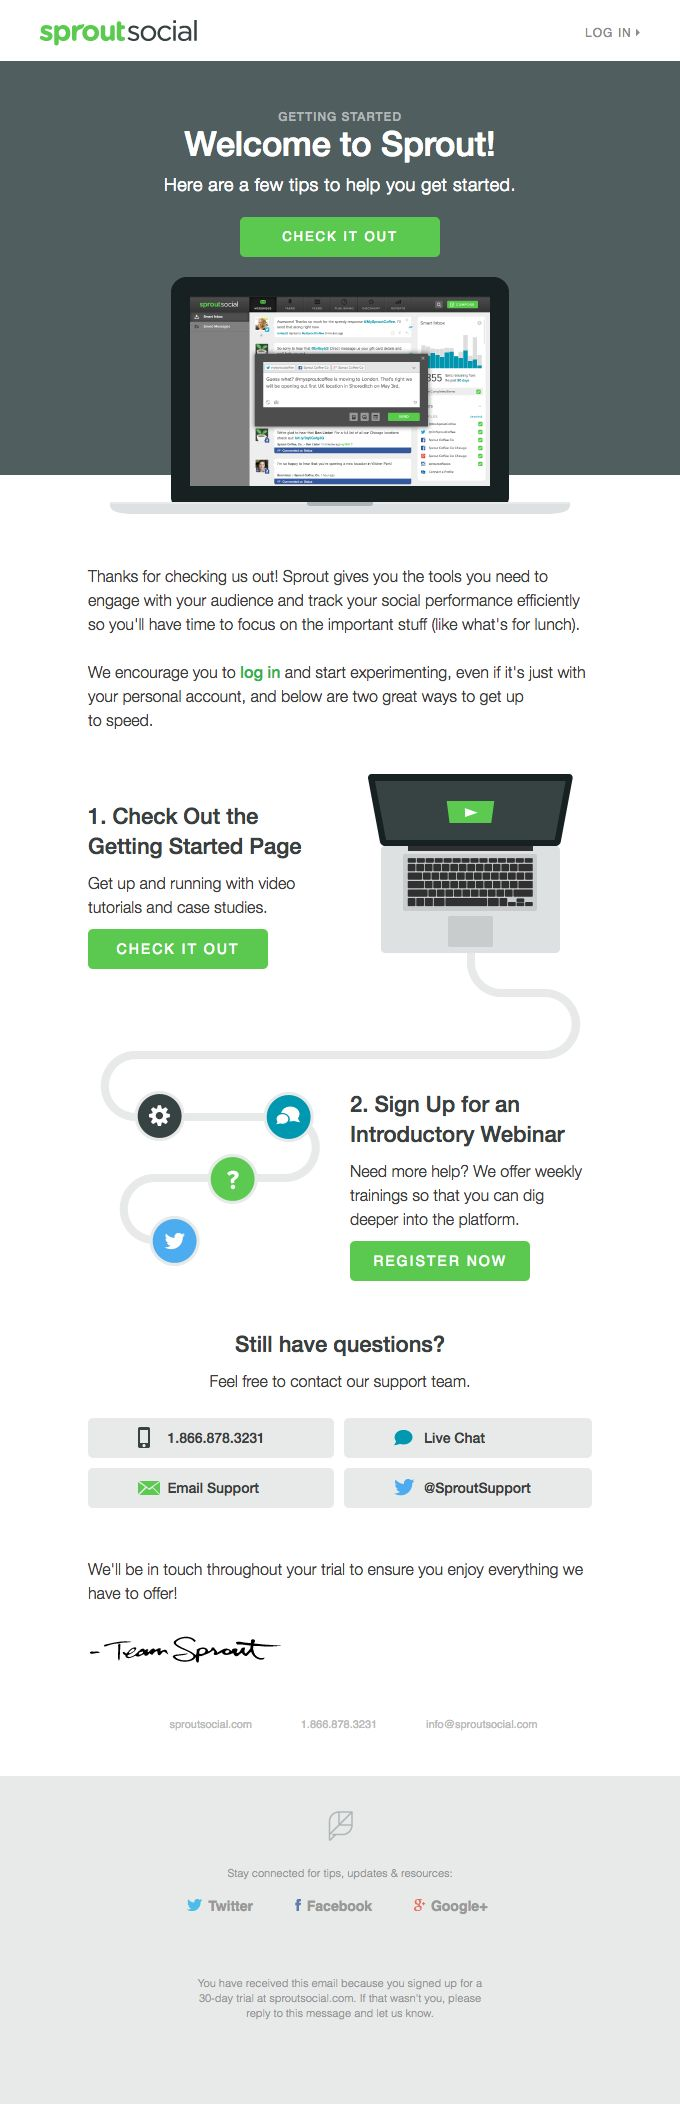 11 best Email images on Pinterest | Email design, Page layout and ...